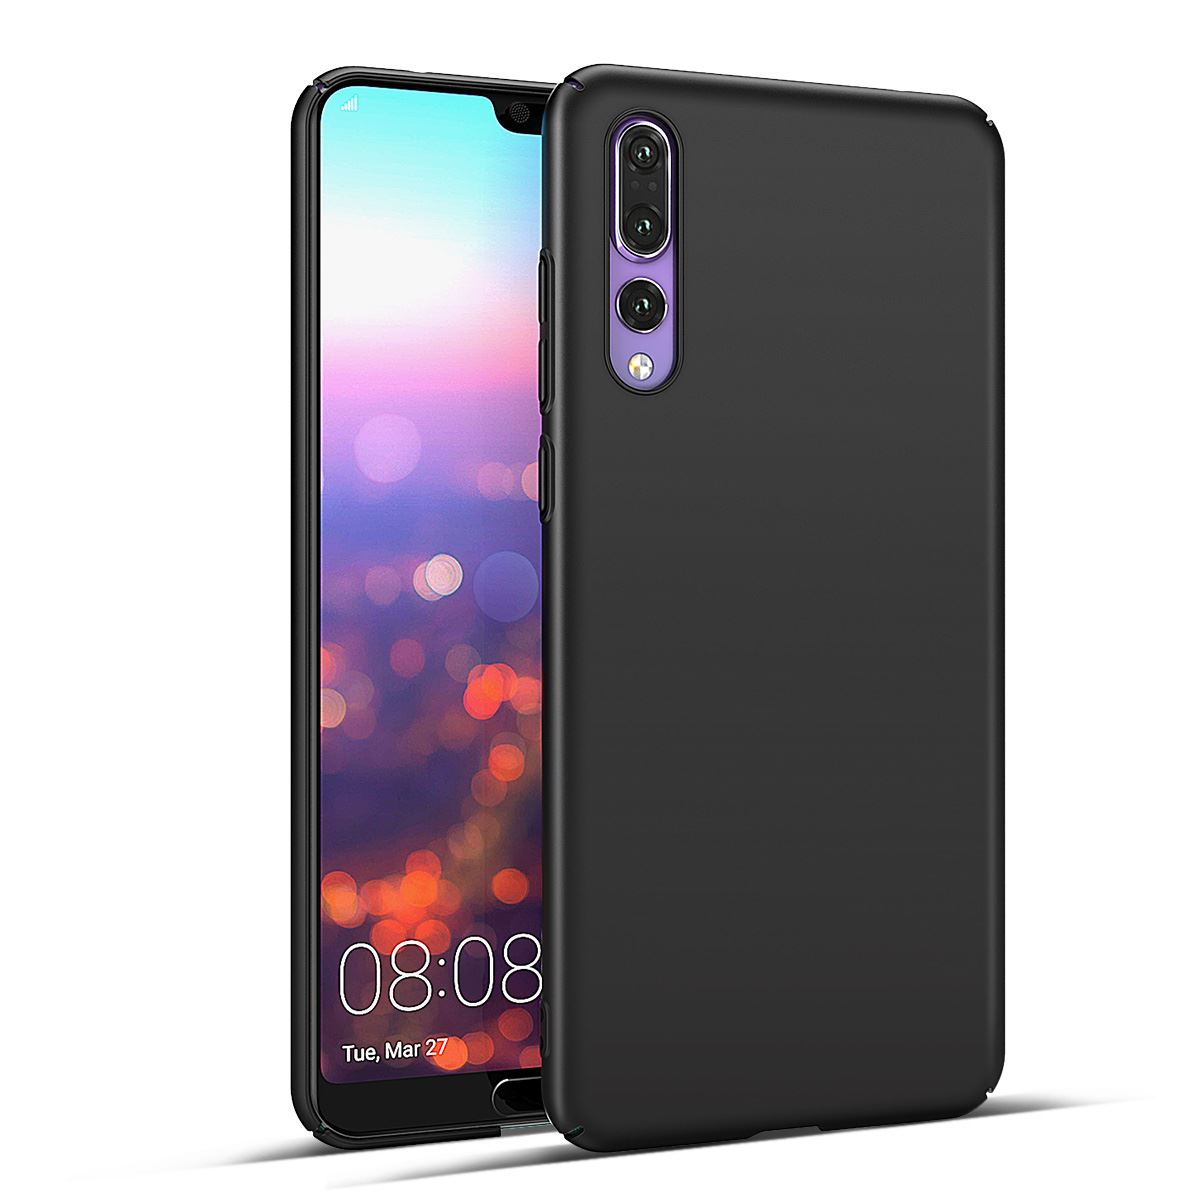 Luxury-Protective-Slim-Thin-Hard-Back-Case-Cover-For-Huawei-P20-Pro-P10-P-Smart thumbnail 19